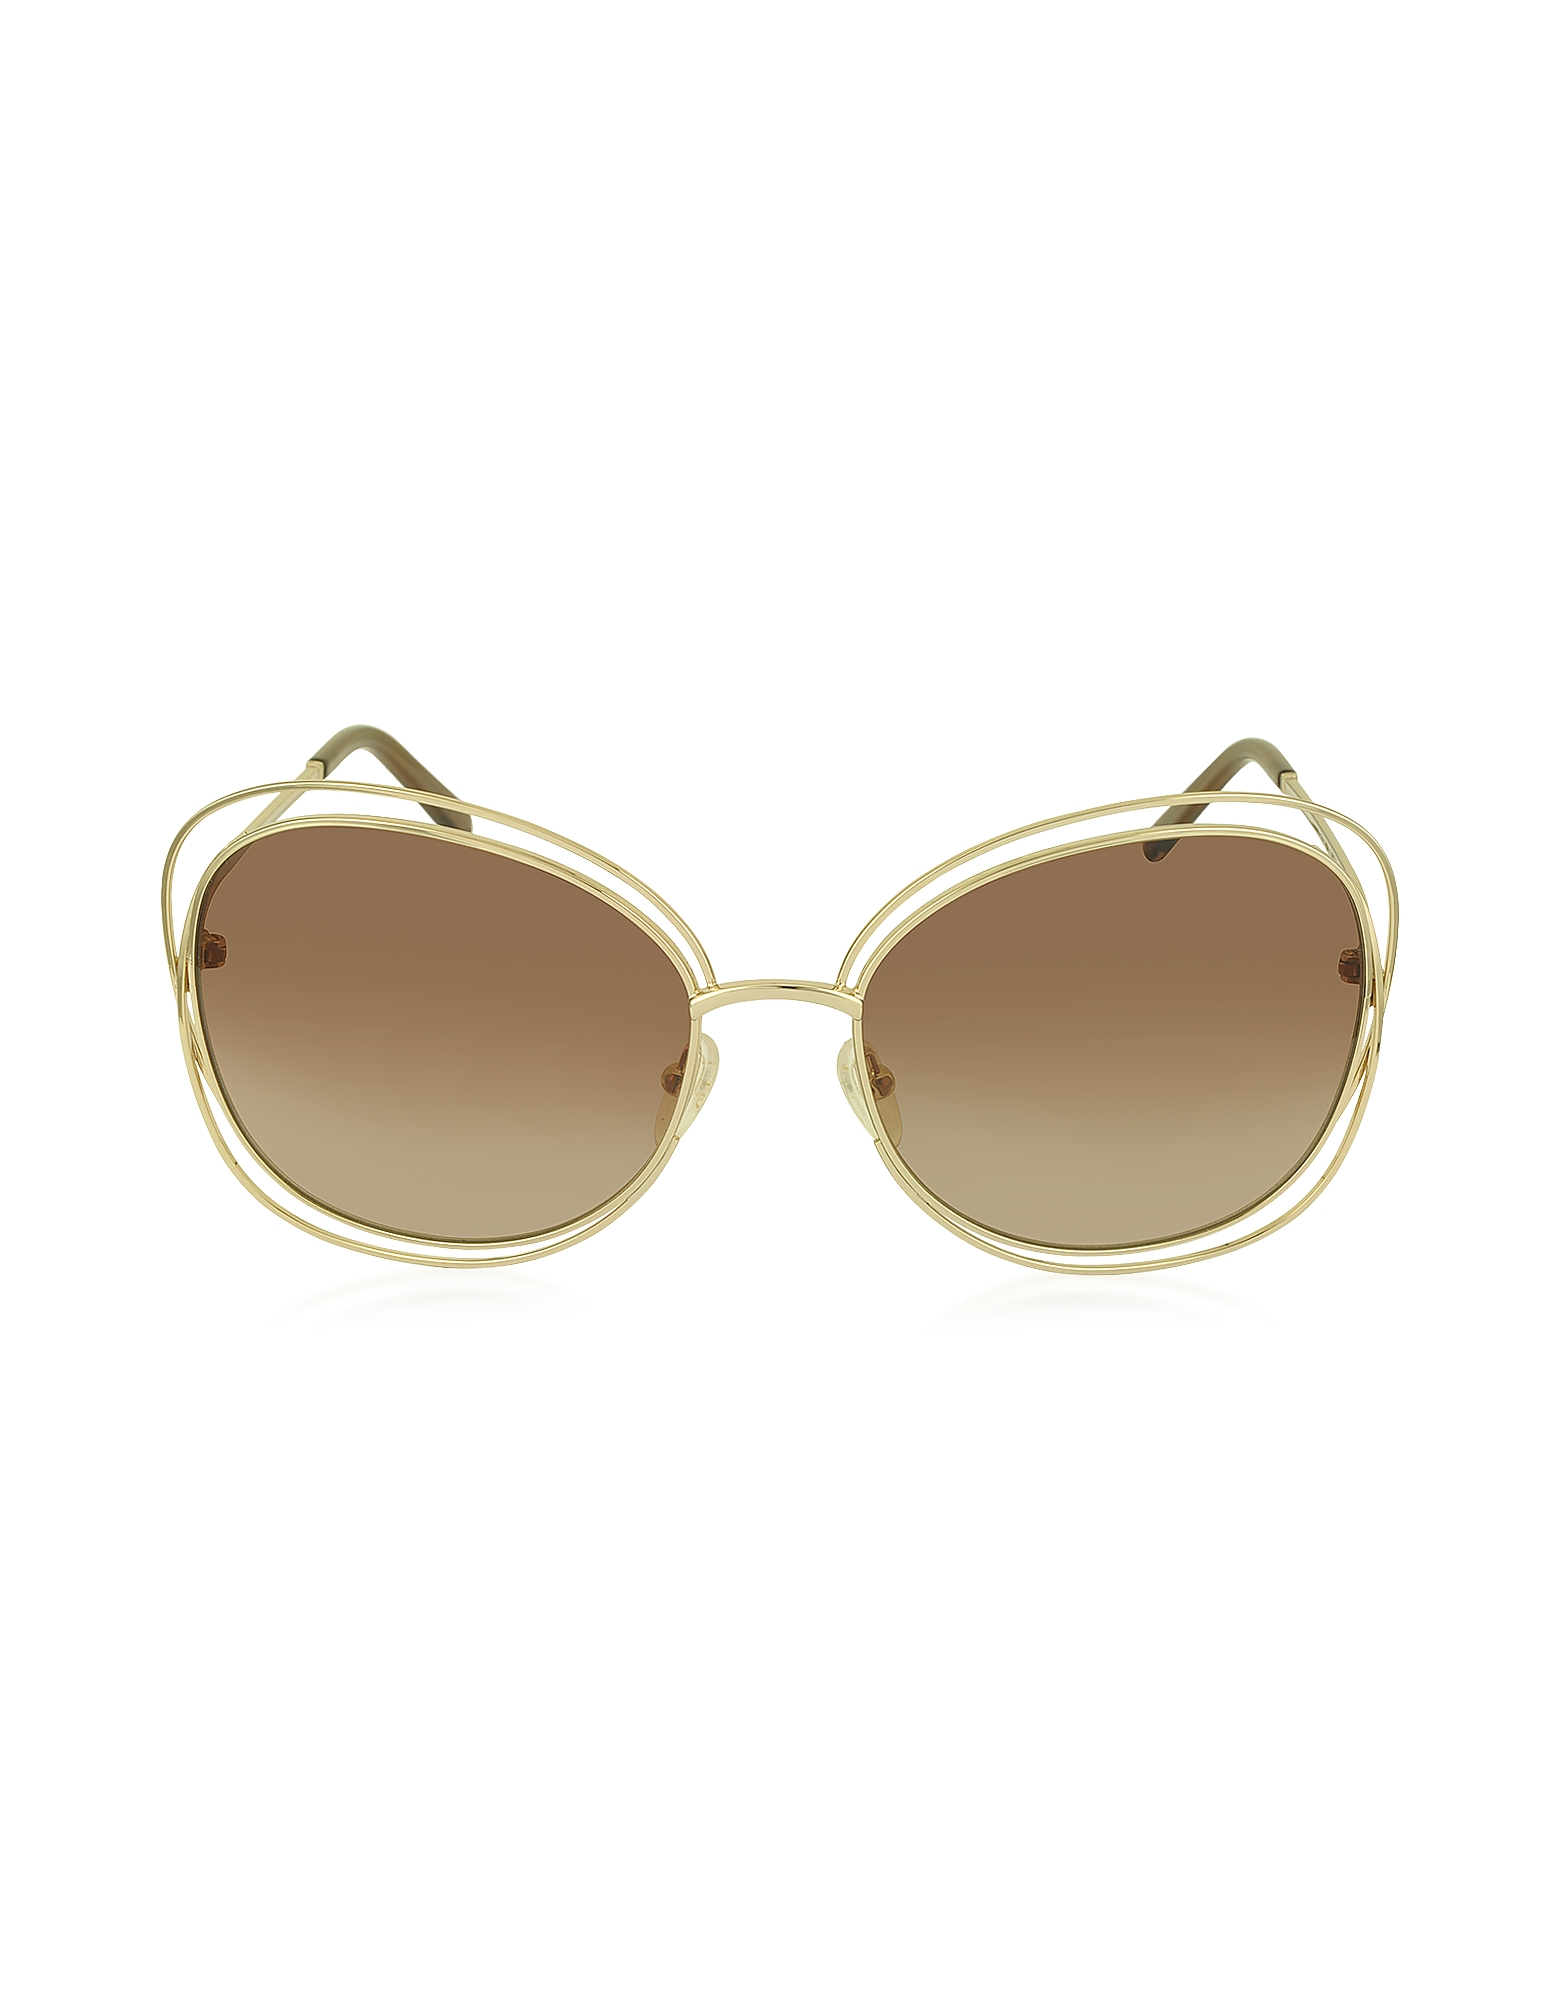 Chloe Sunglasses, CARLINA CE 119S 786 Gold Metal Square Women's Sunglasses